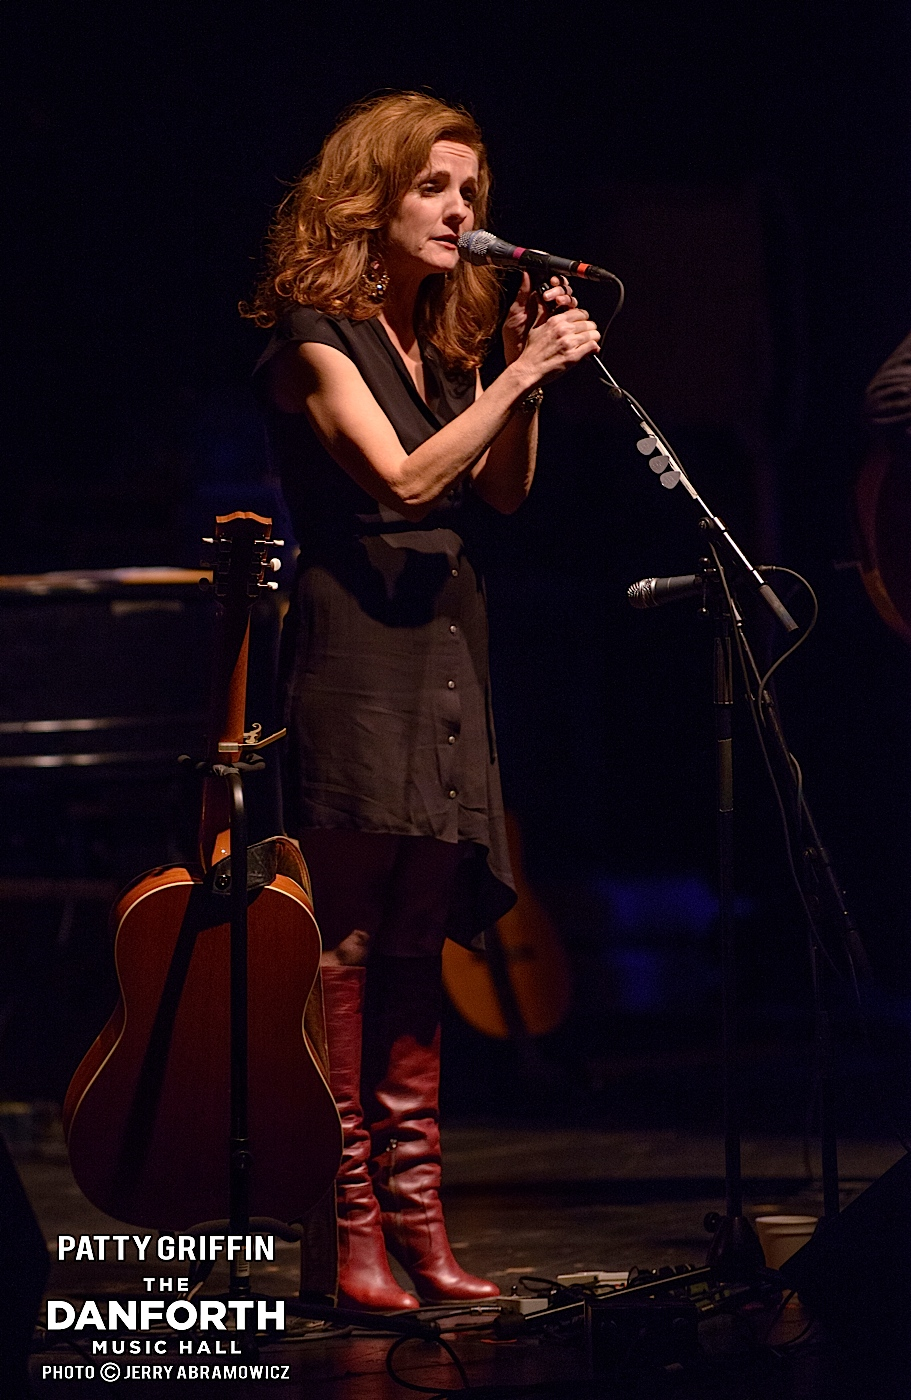 20130611 Patty Griffin performs at The Danforth Music Hall Toronto 0013